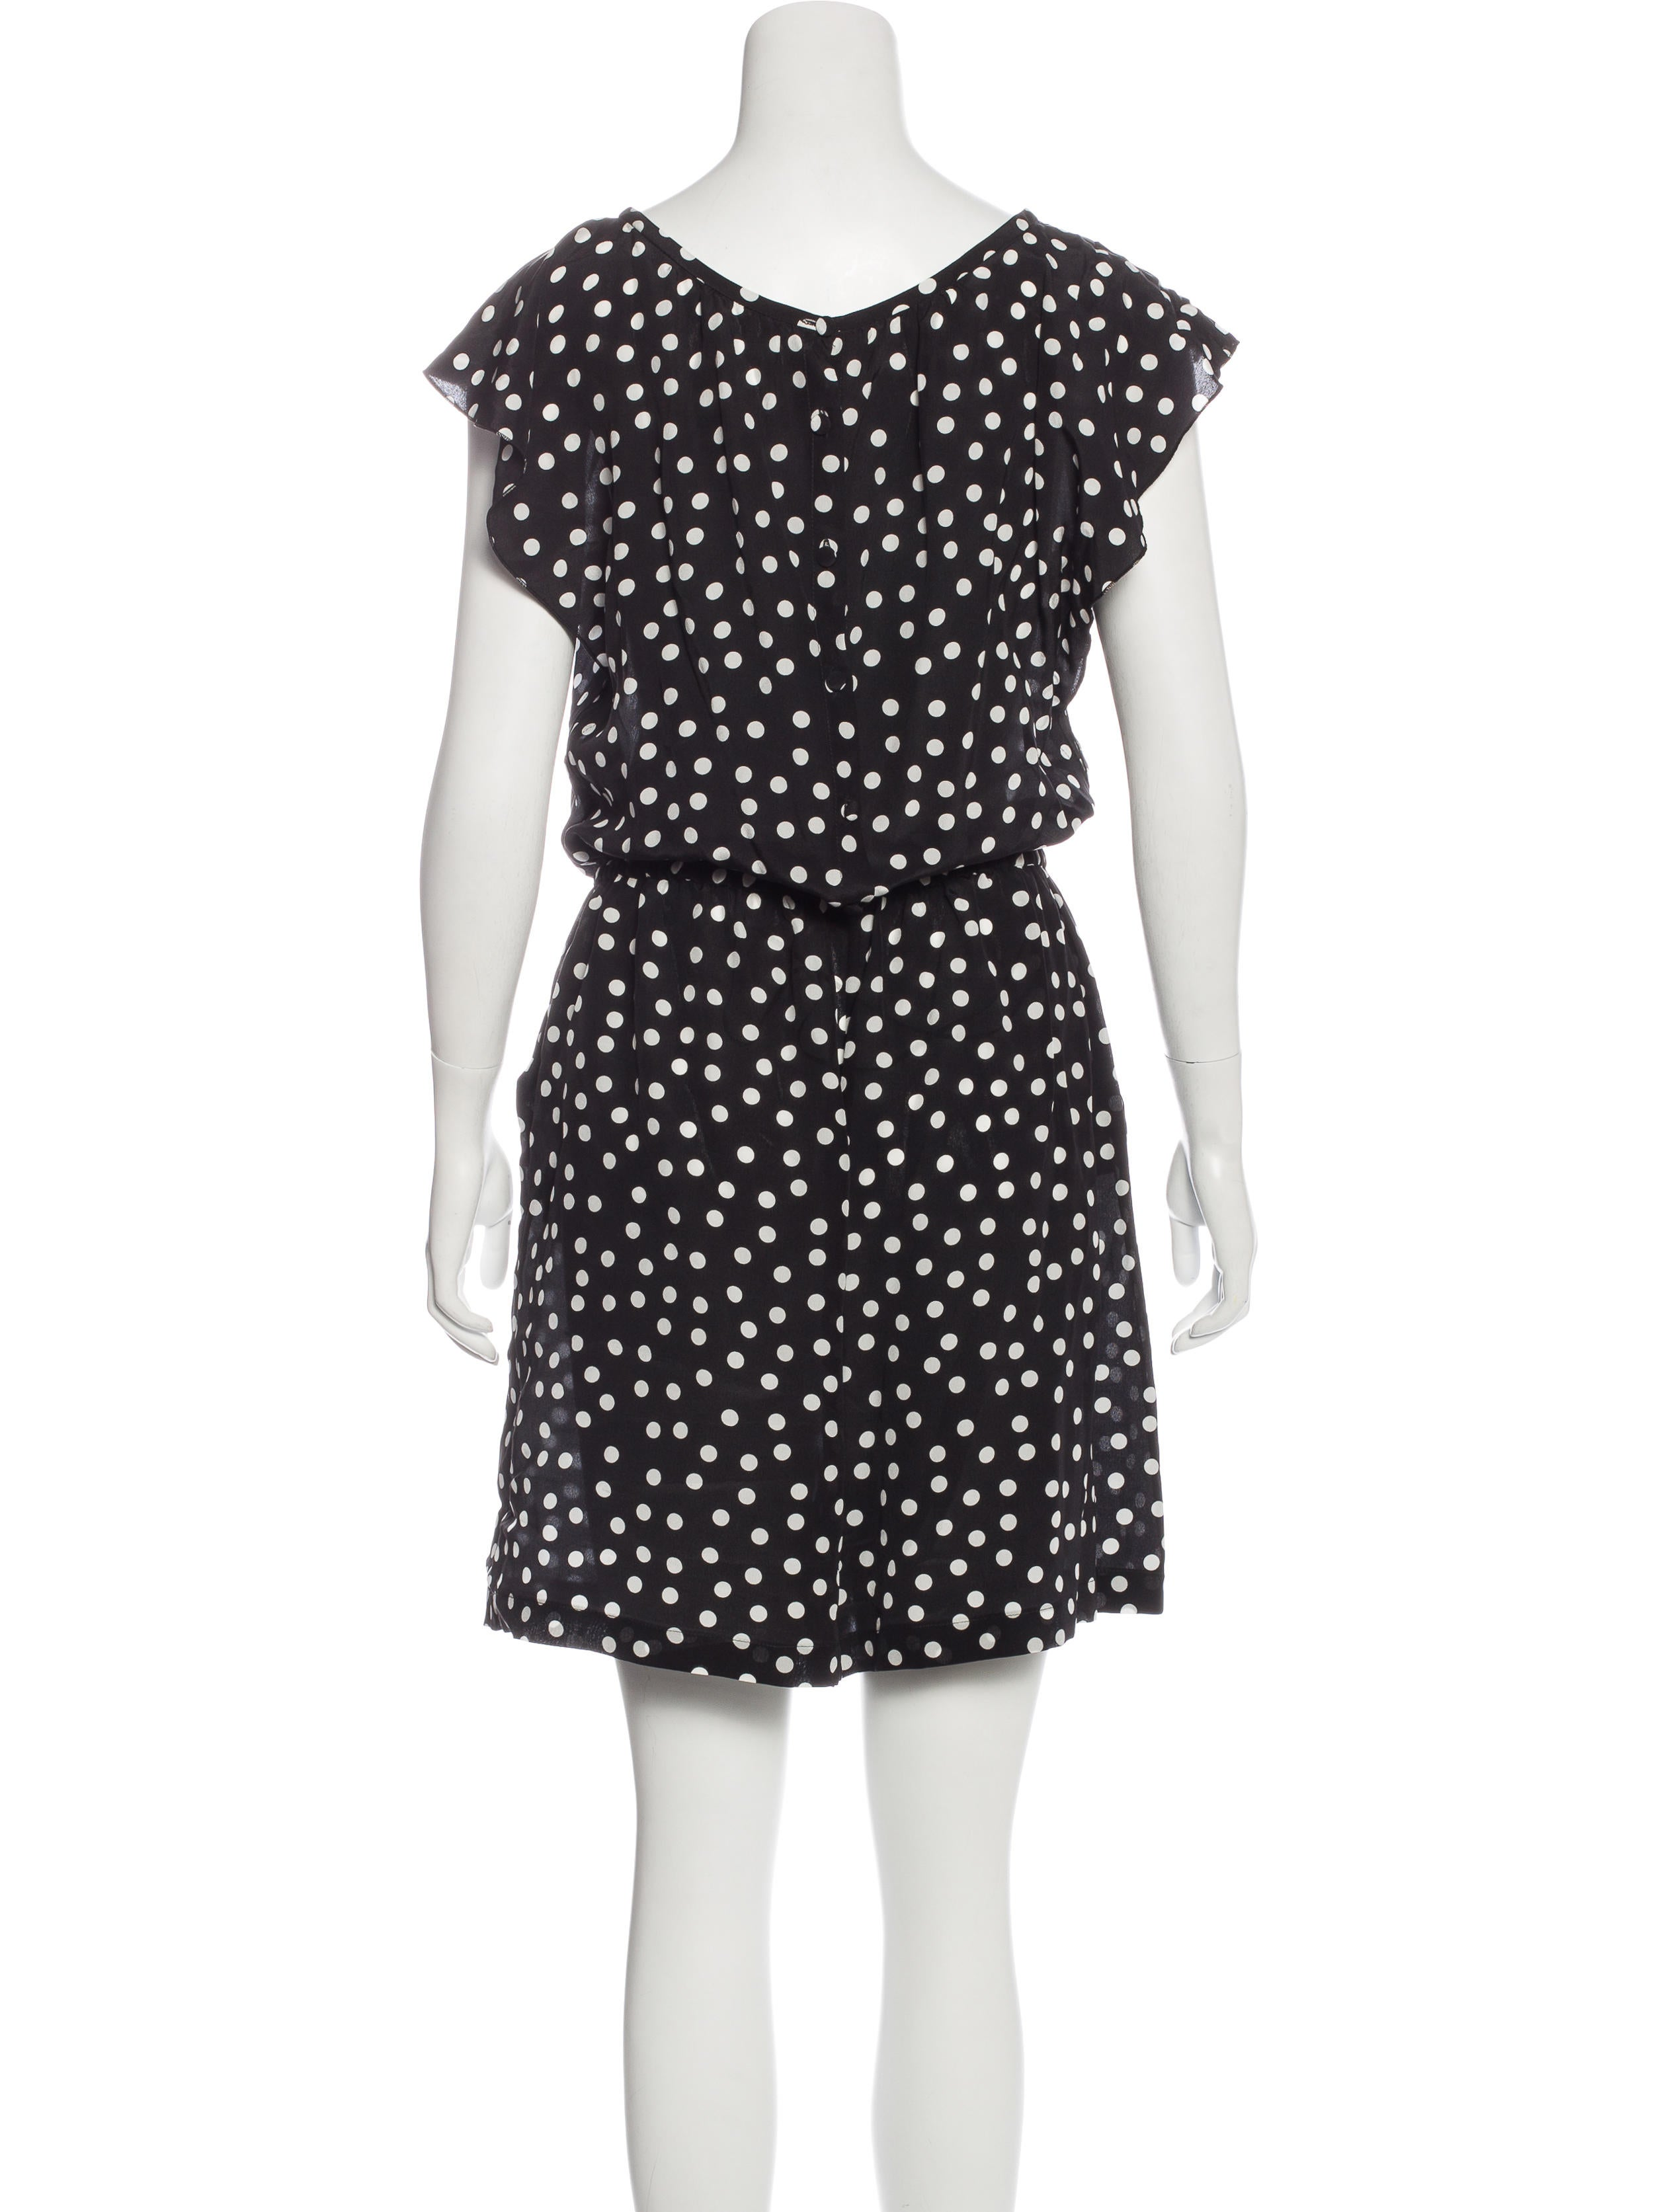 Polka Dot Romper Outfit